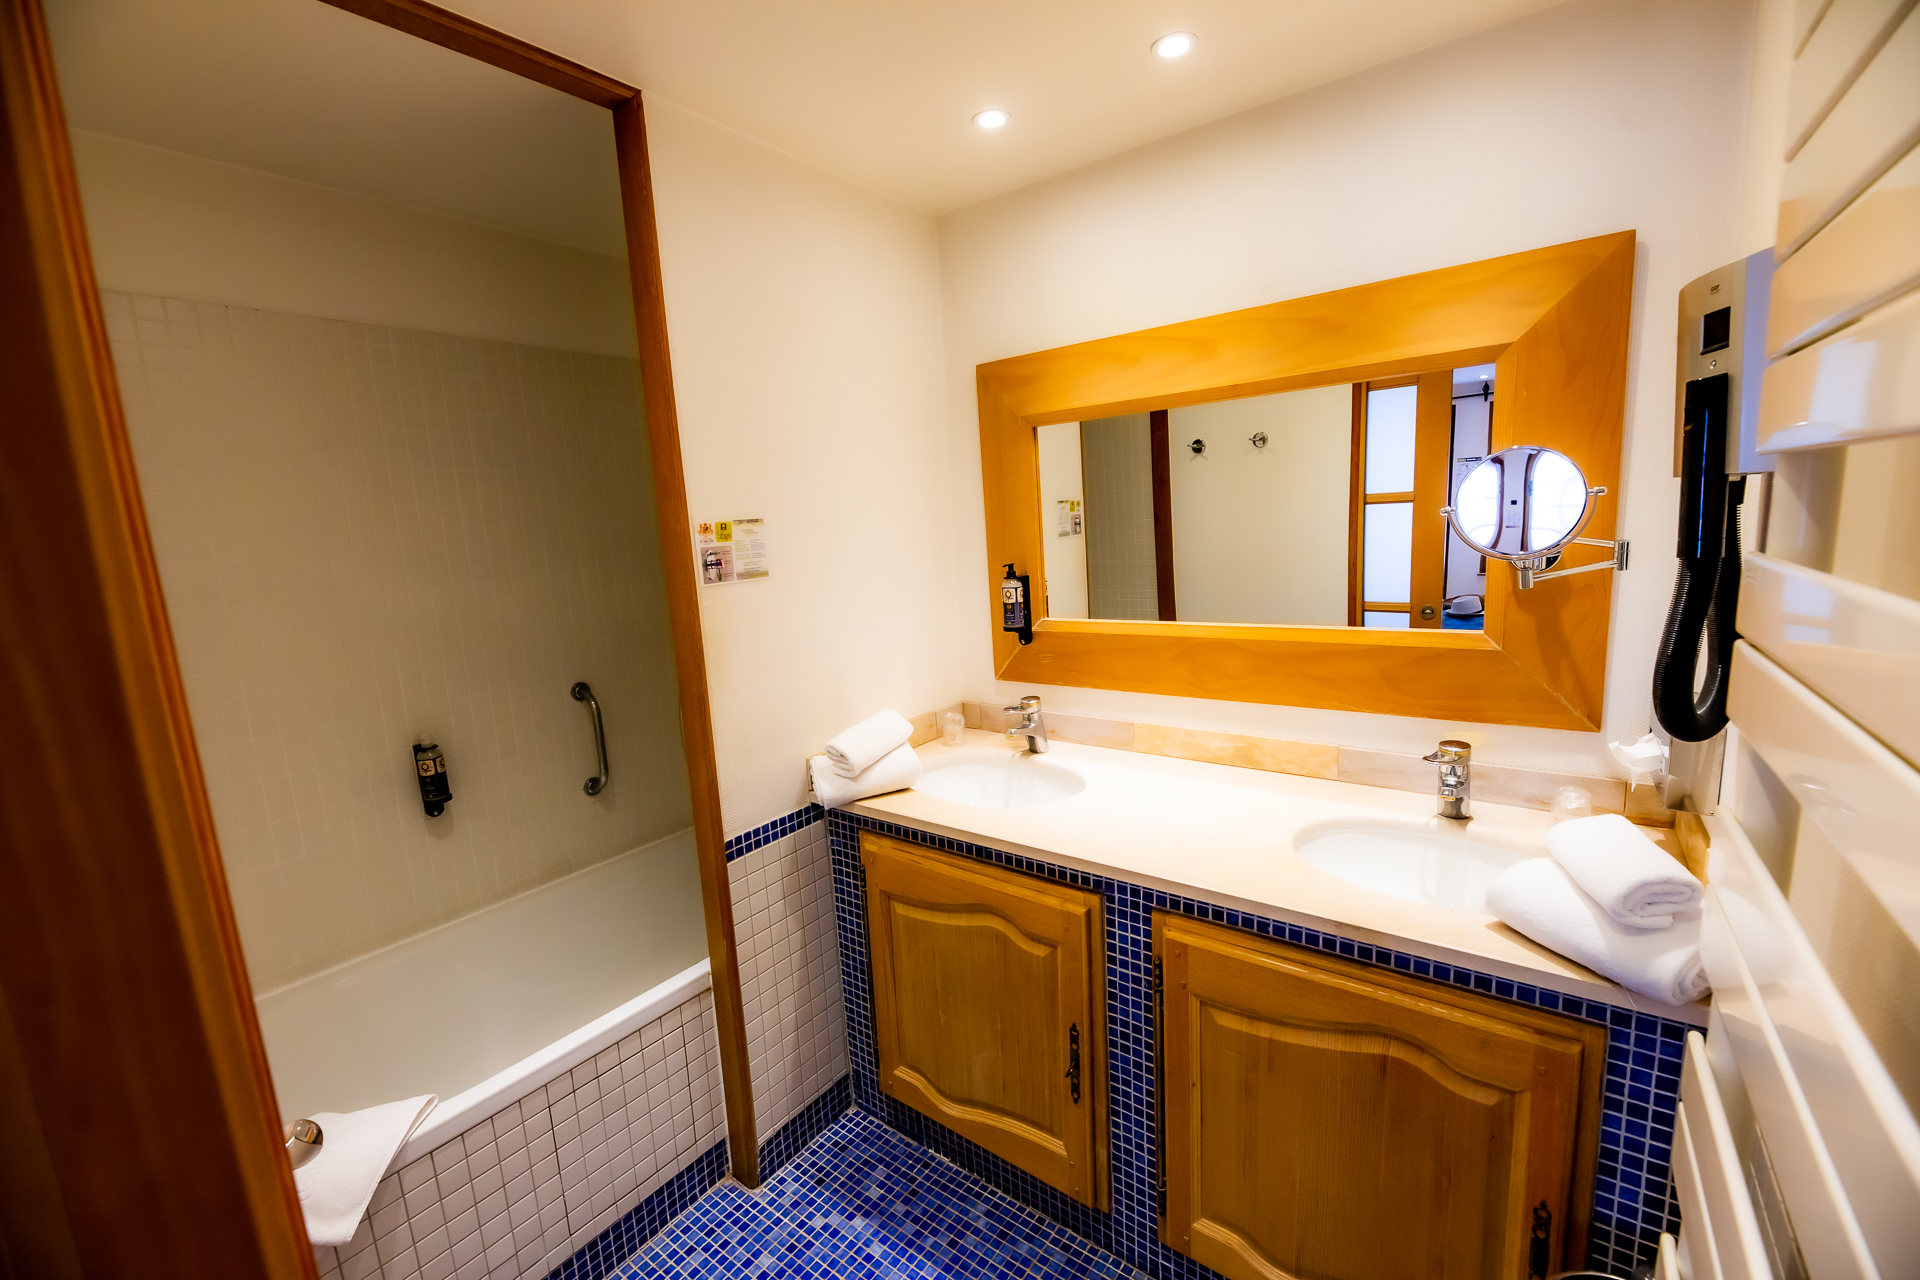 19/Chambres/Traditionnelle/hotel_spa_le_lion_d_or-1793Stephane_Leroy.jpg